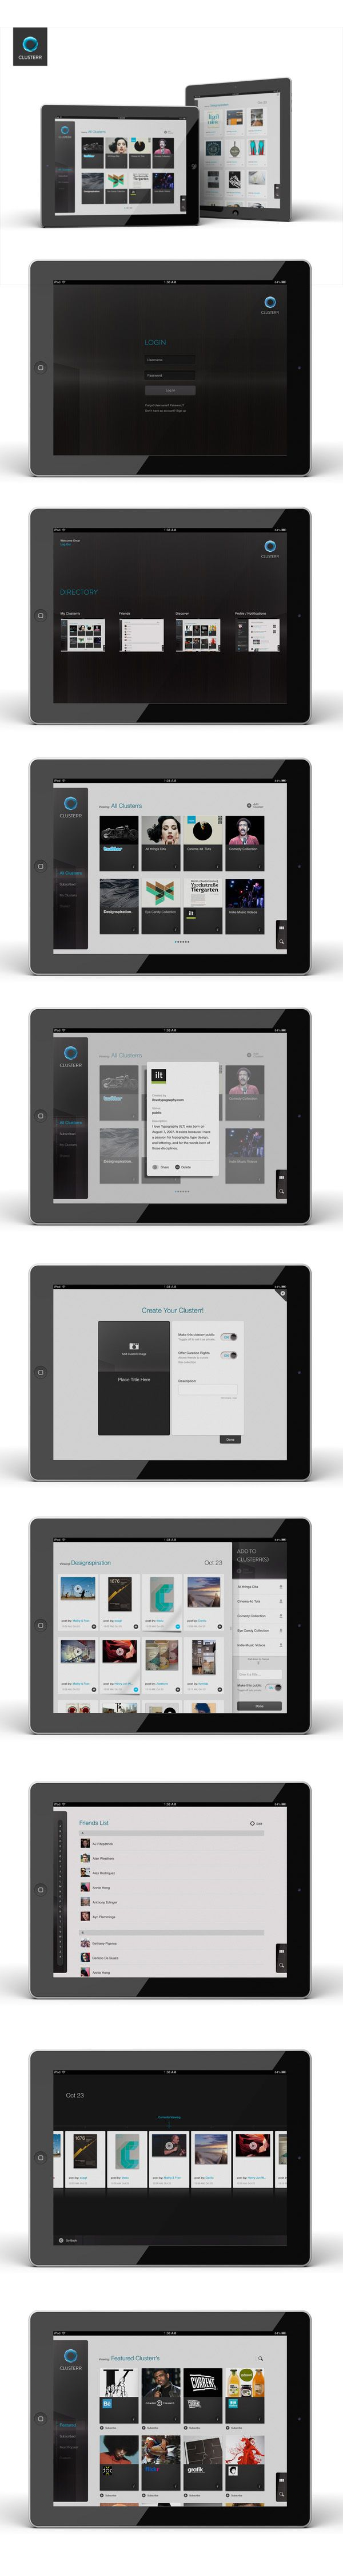 #iPad #App #Mobile #UI #Tablet